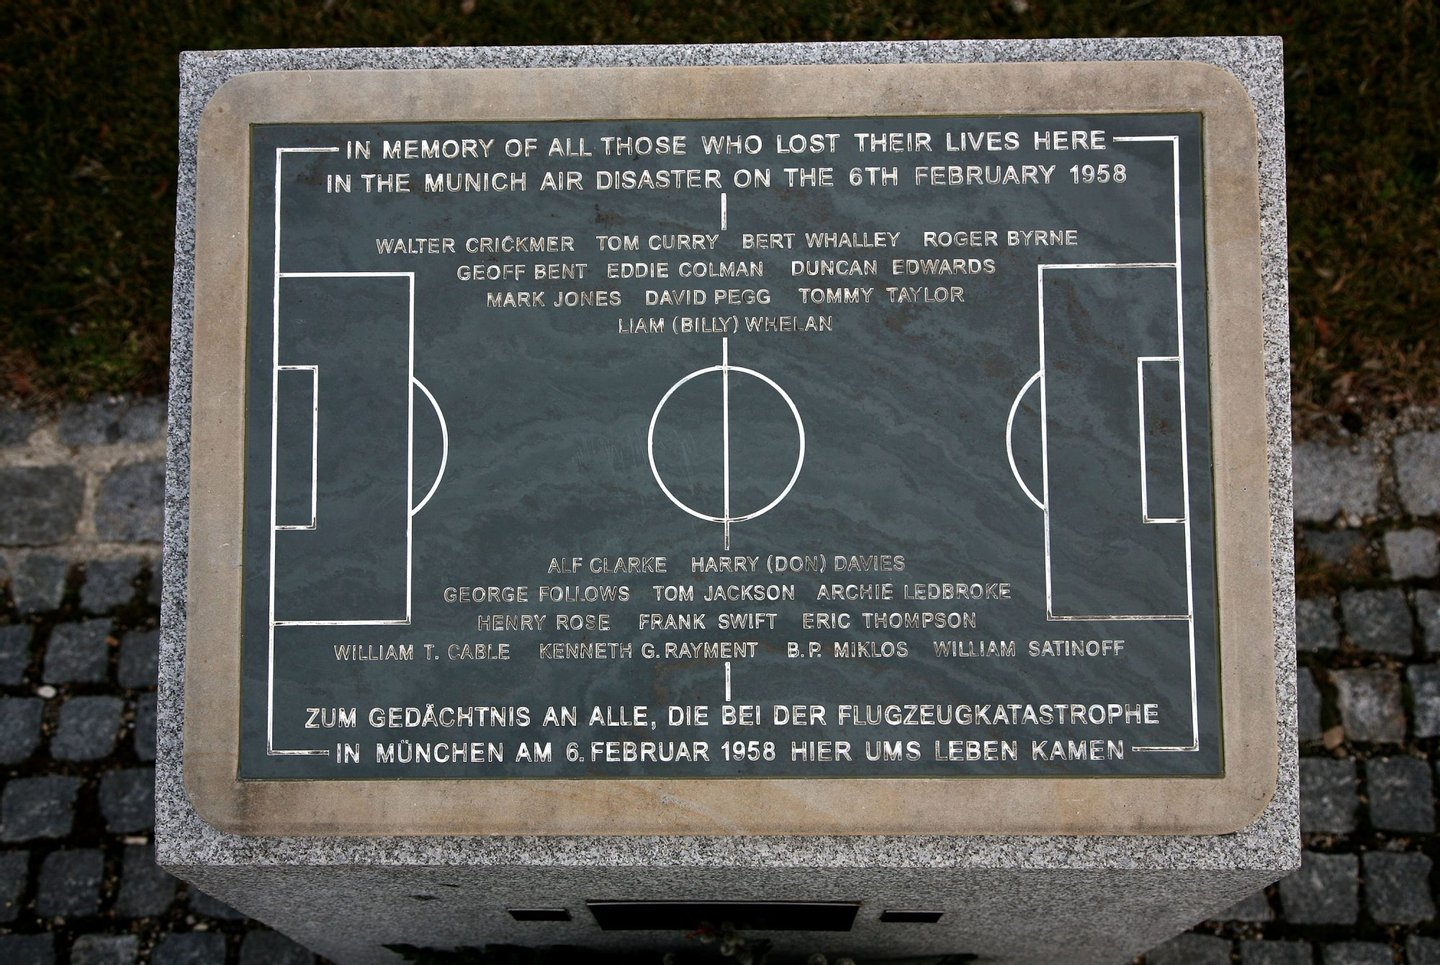 KIRCHTRUDERING, GERMANY - FEBRUARY 05: A memorial stone recalls the place of the Munich air desaster of the 6th February 1958, as 23 people including 8 members of the Manchester United football team lost their lives, seen on February 5, 2008 in Kirchtrudering near Munich, Germany. ManU supporters will commemorate the 50th anniversary at the scene of the accident. (Photo by Johannes Simon/Getty Images)